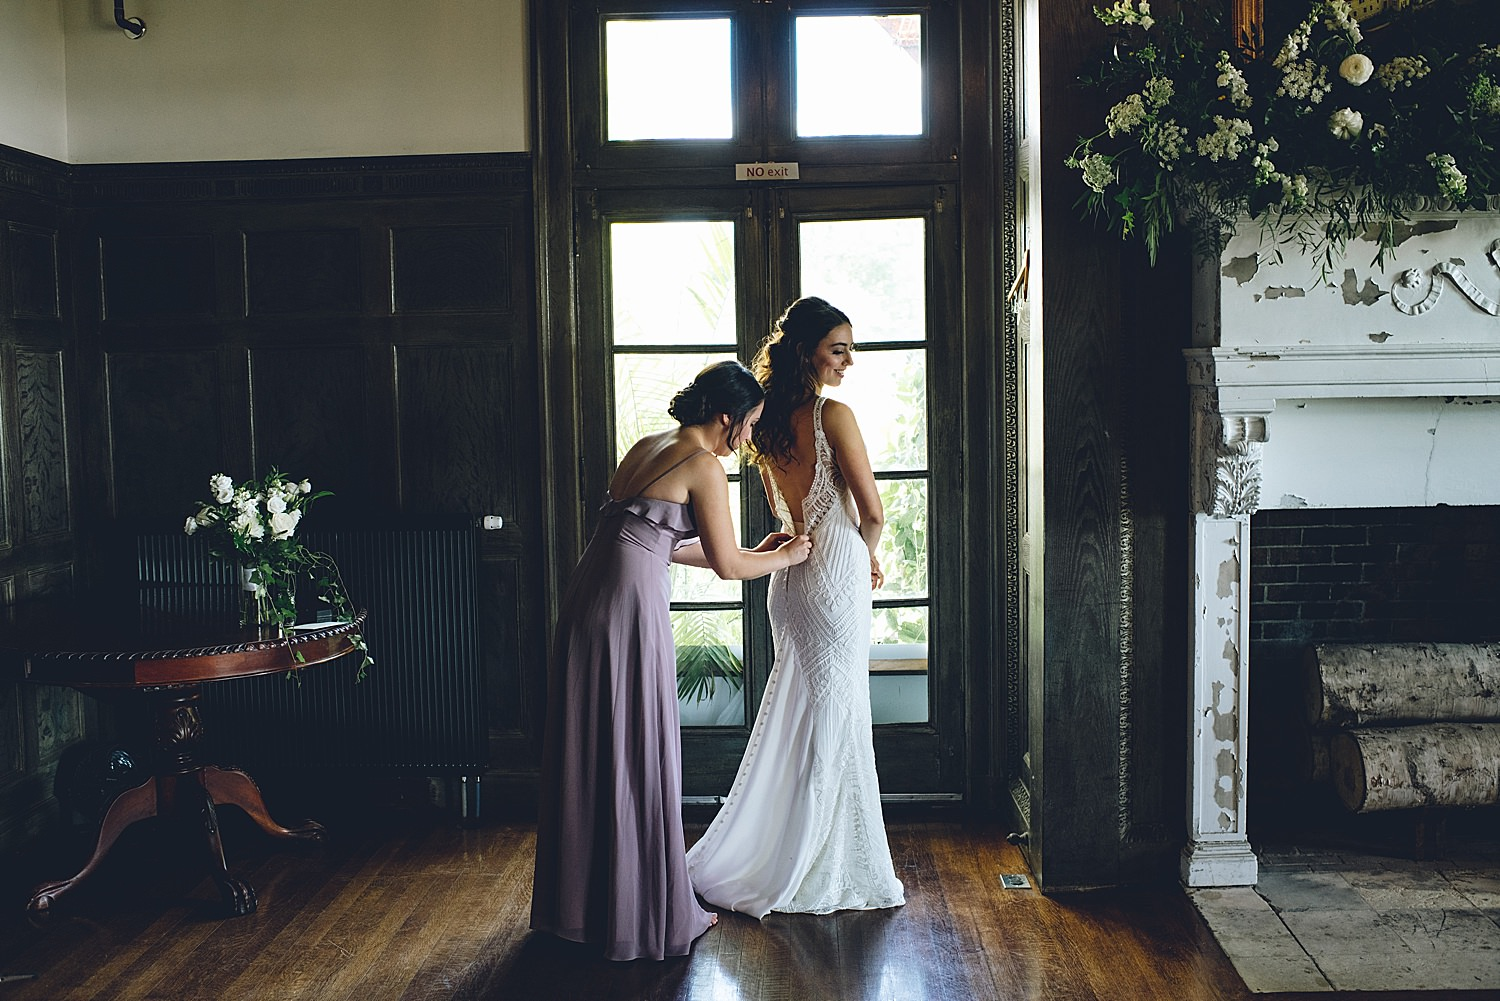 bride getting wedding dress on with sisters help